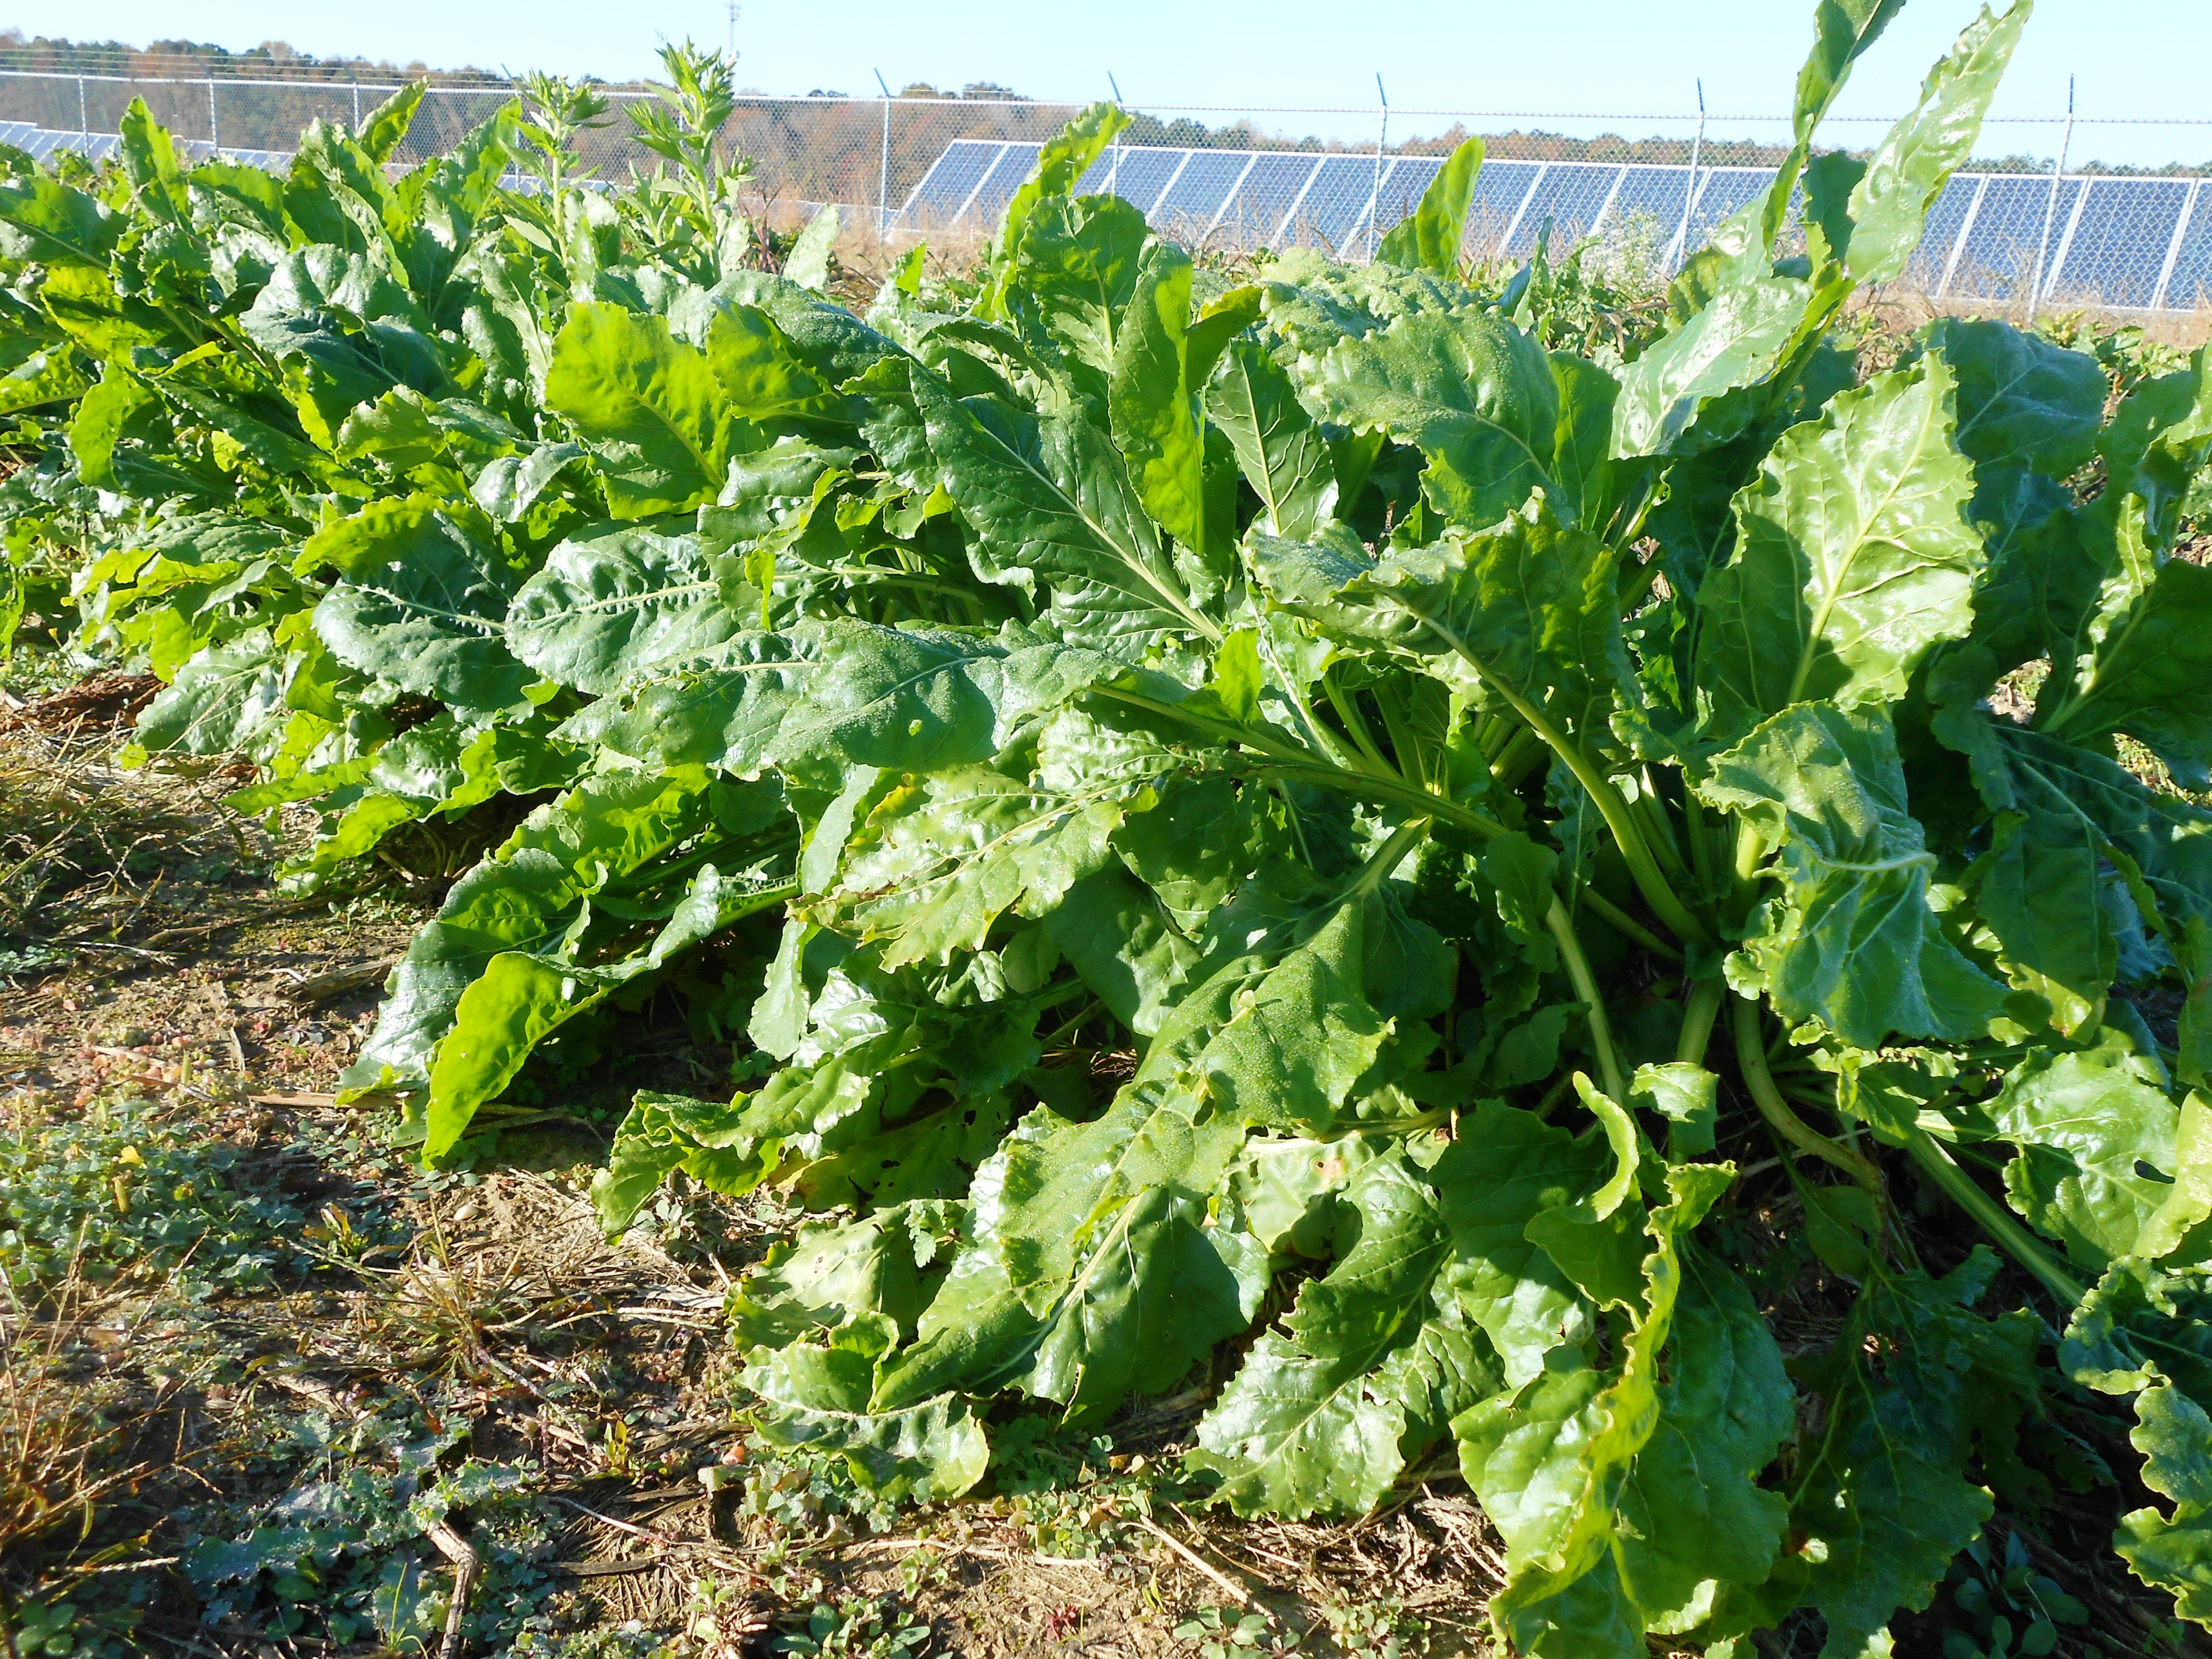 Energy beets growing in November at UMES test field watched over by solar panels.